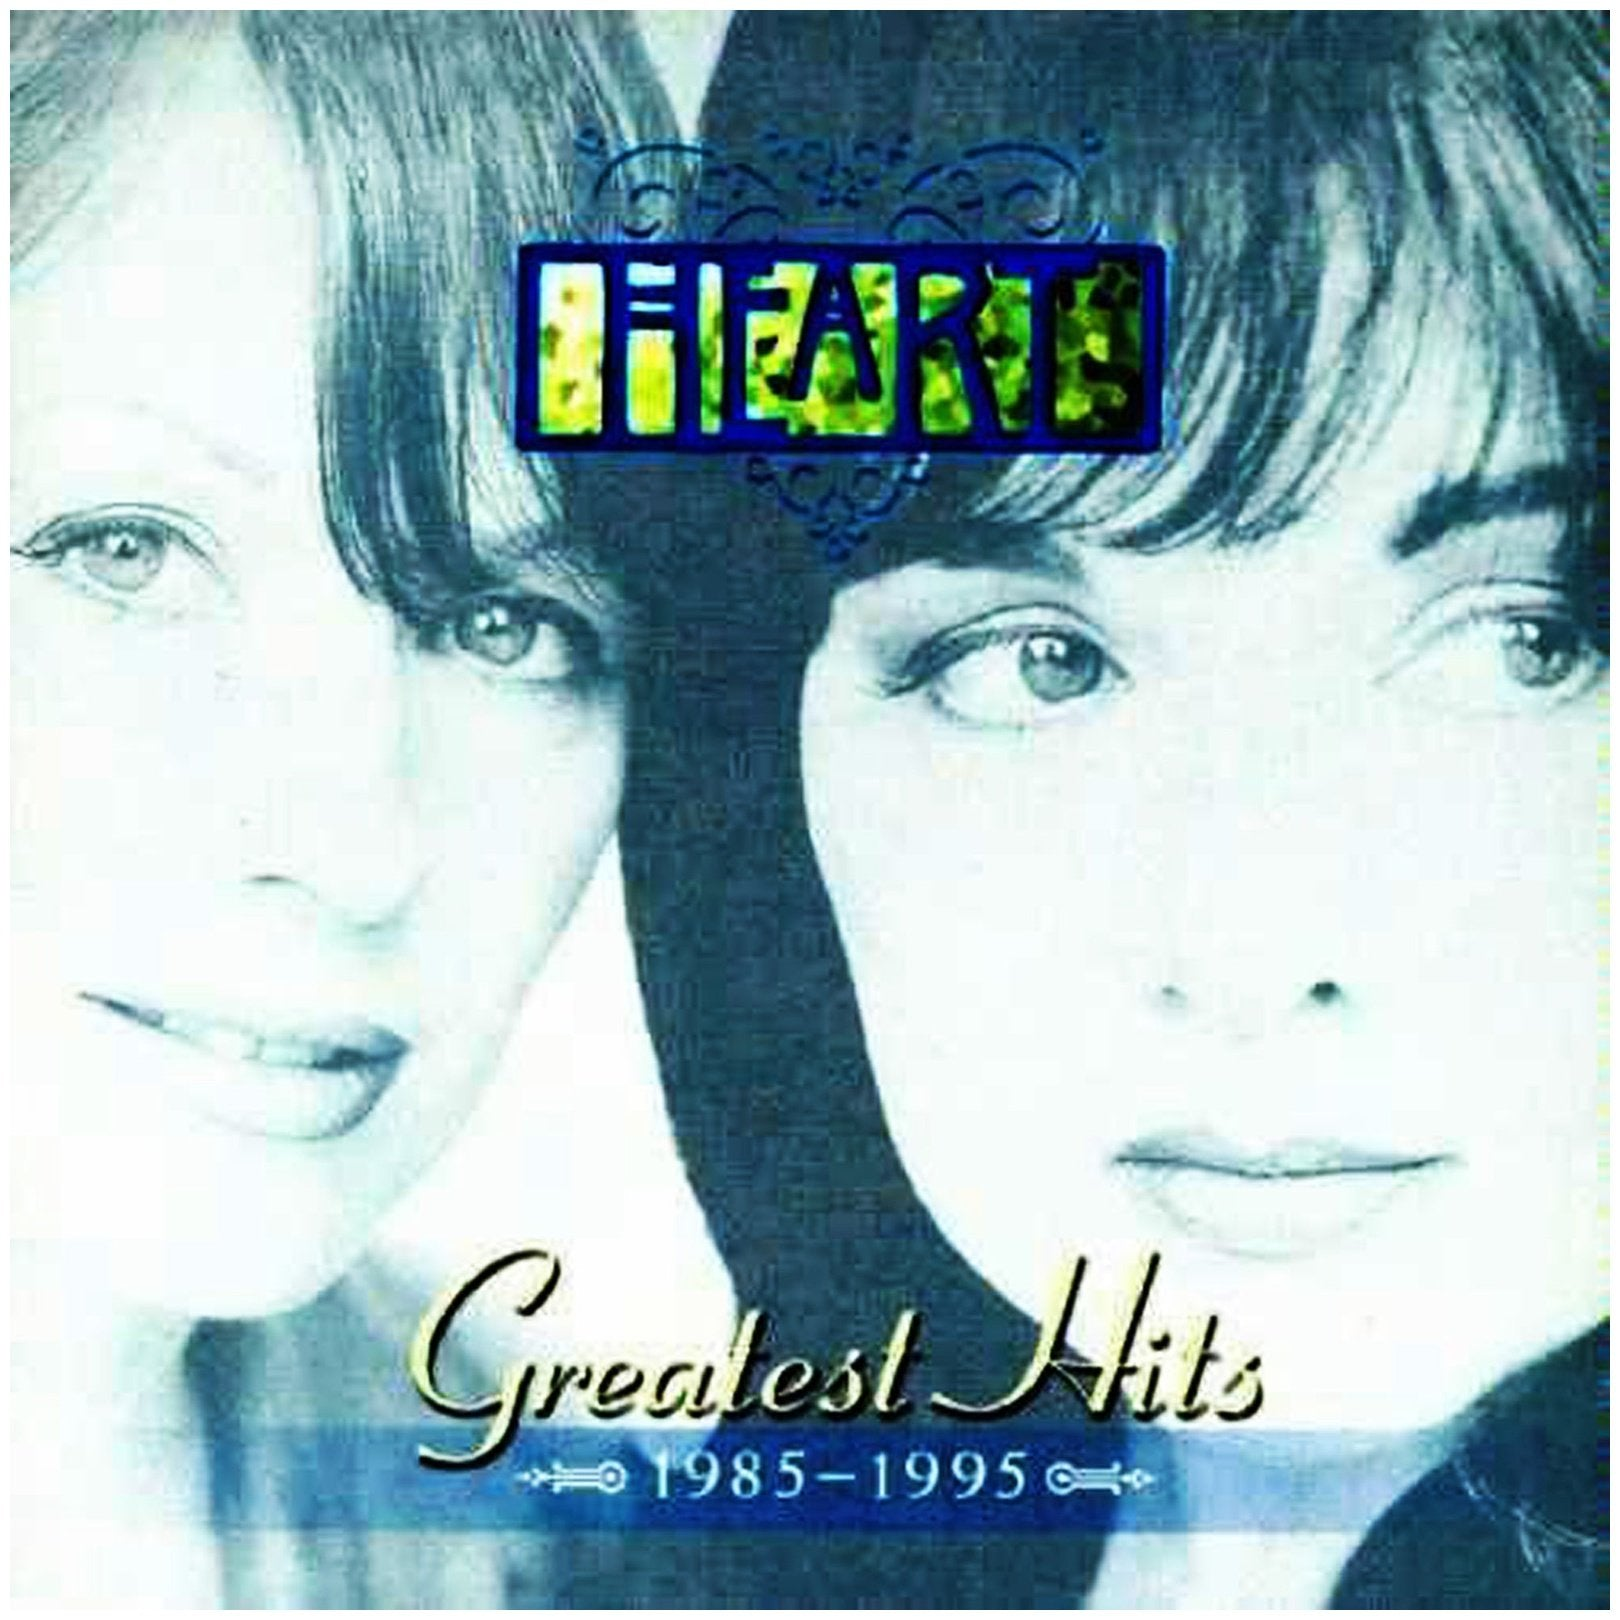 Heart - Heart - Greatest Hits 1985-1995 - Cd